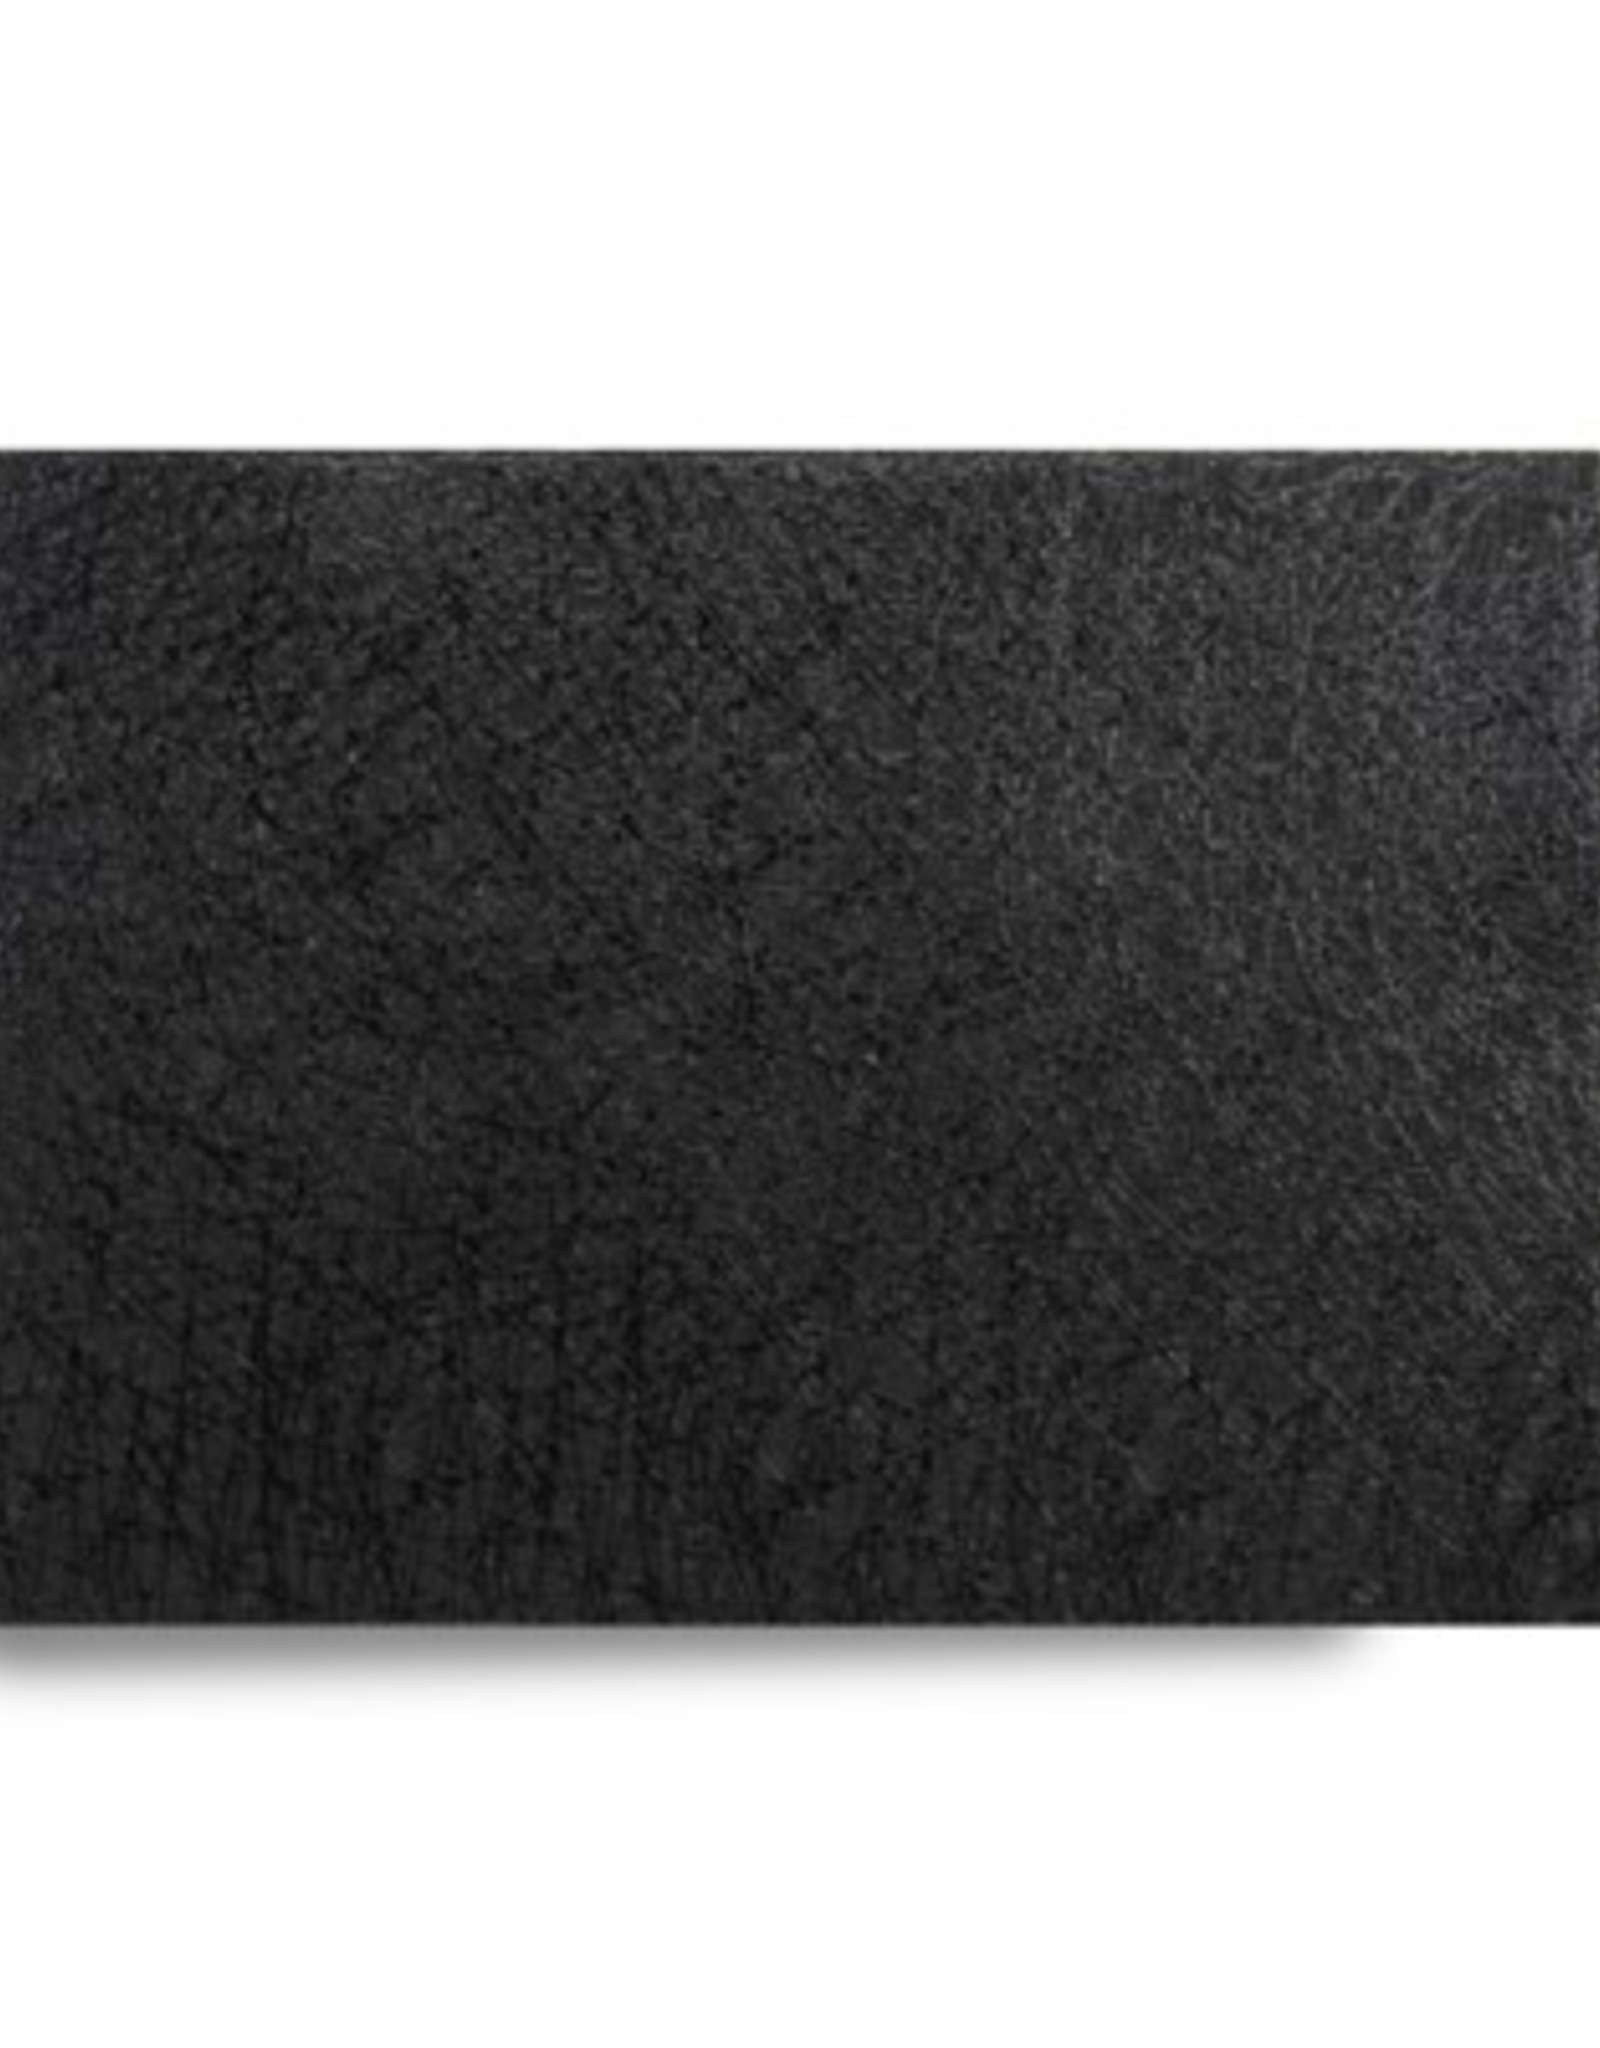 Placemat Harman Abstract 13x18 Black